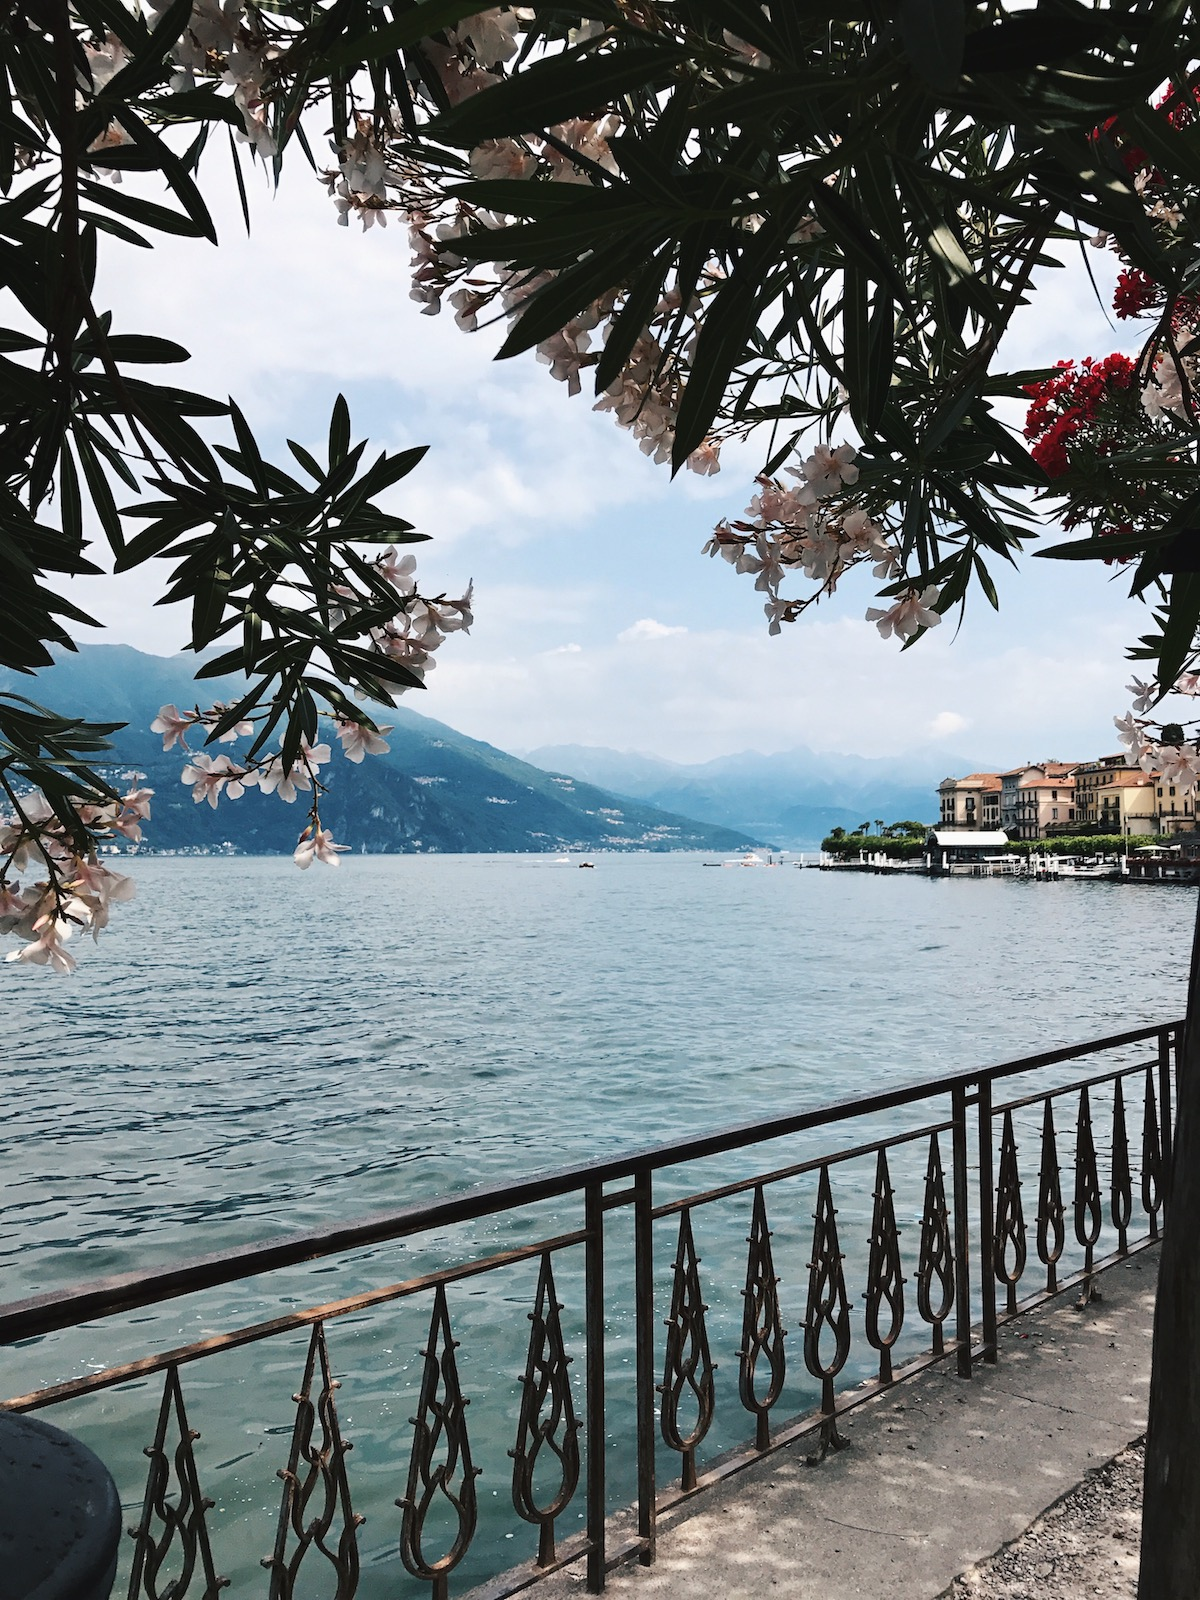 jessie-khoo-fashion-and-sounds-lake-como